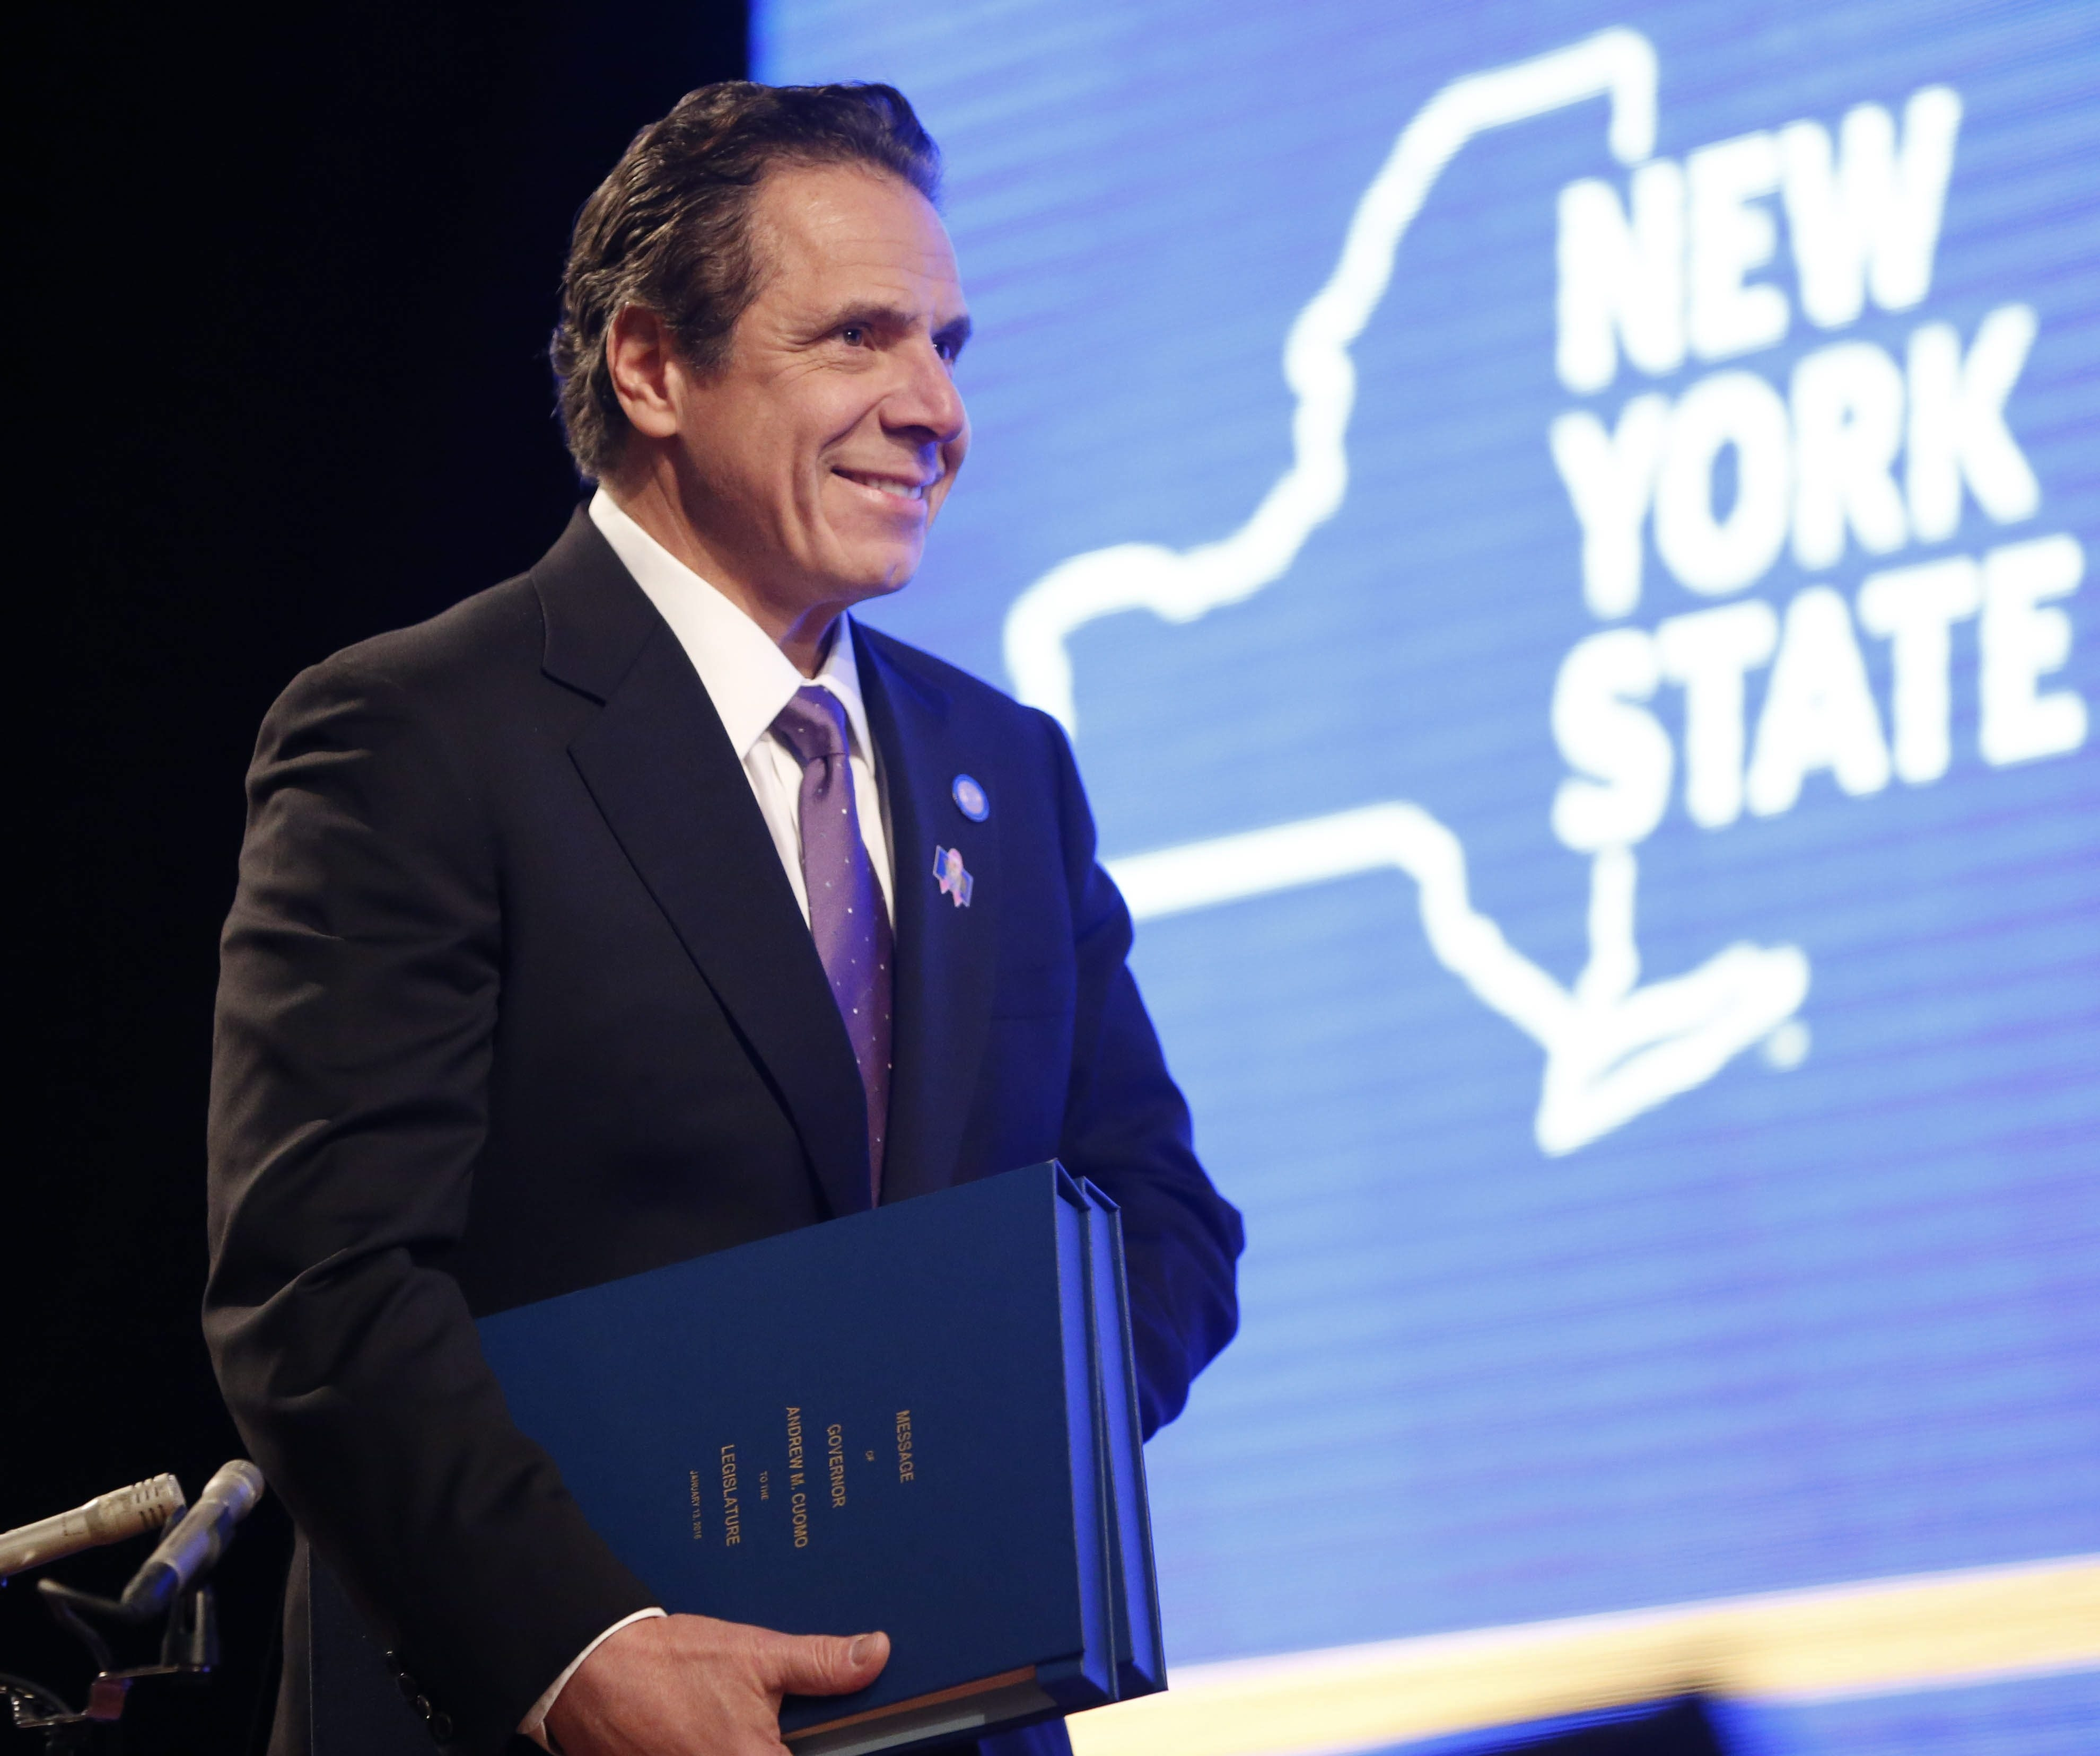 With copies of his budget in hand, New York Gov. Andrew Cuomo takes the stage for the annual State of the State address at the Empire State Plaza Convention Center in Albany on Wednesday, Jan. 13, 2016.  (Derek Gee/Buffalo News)